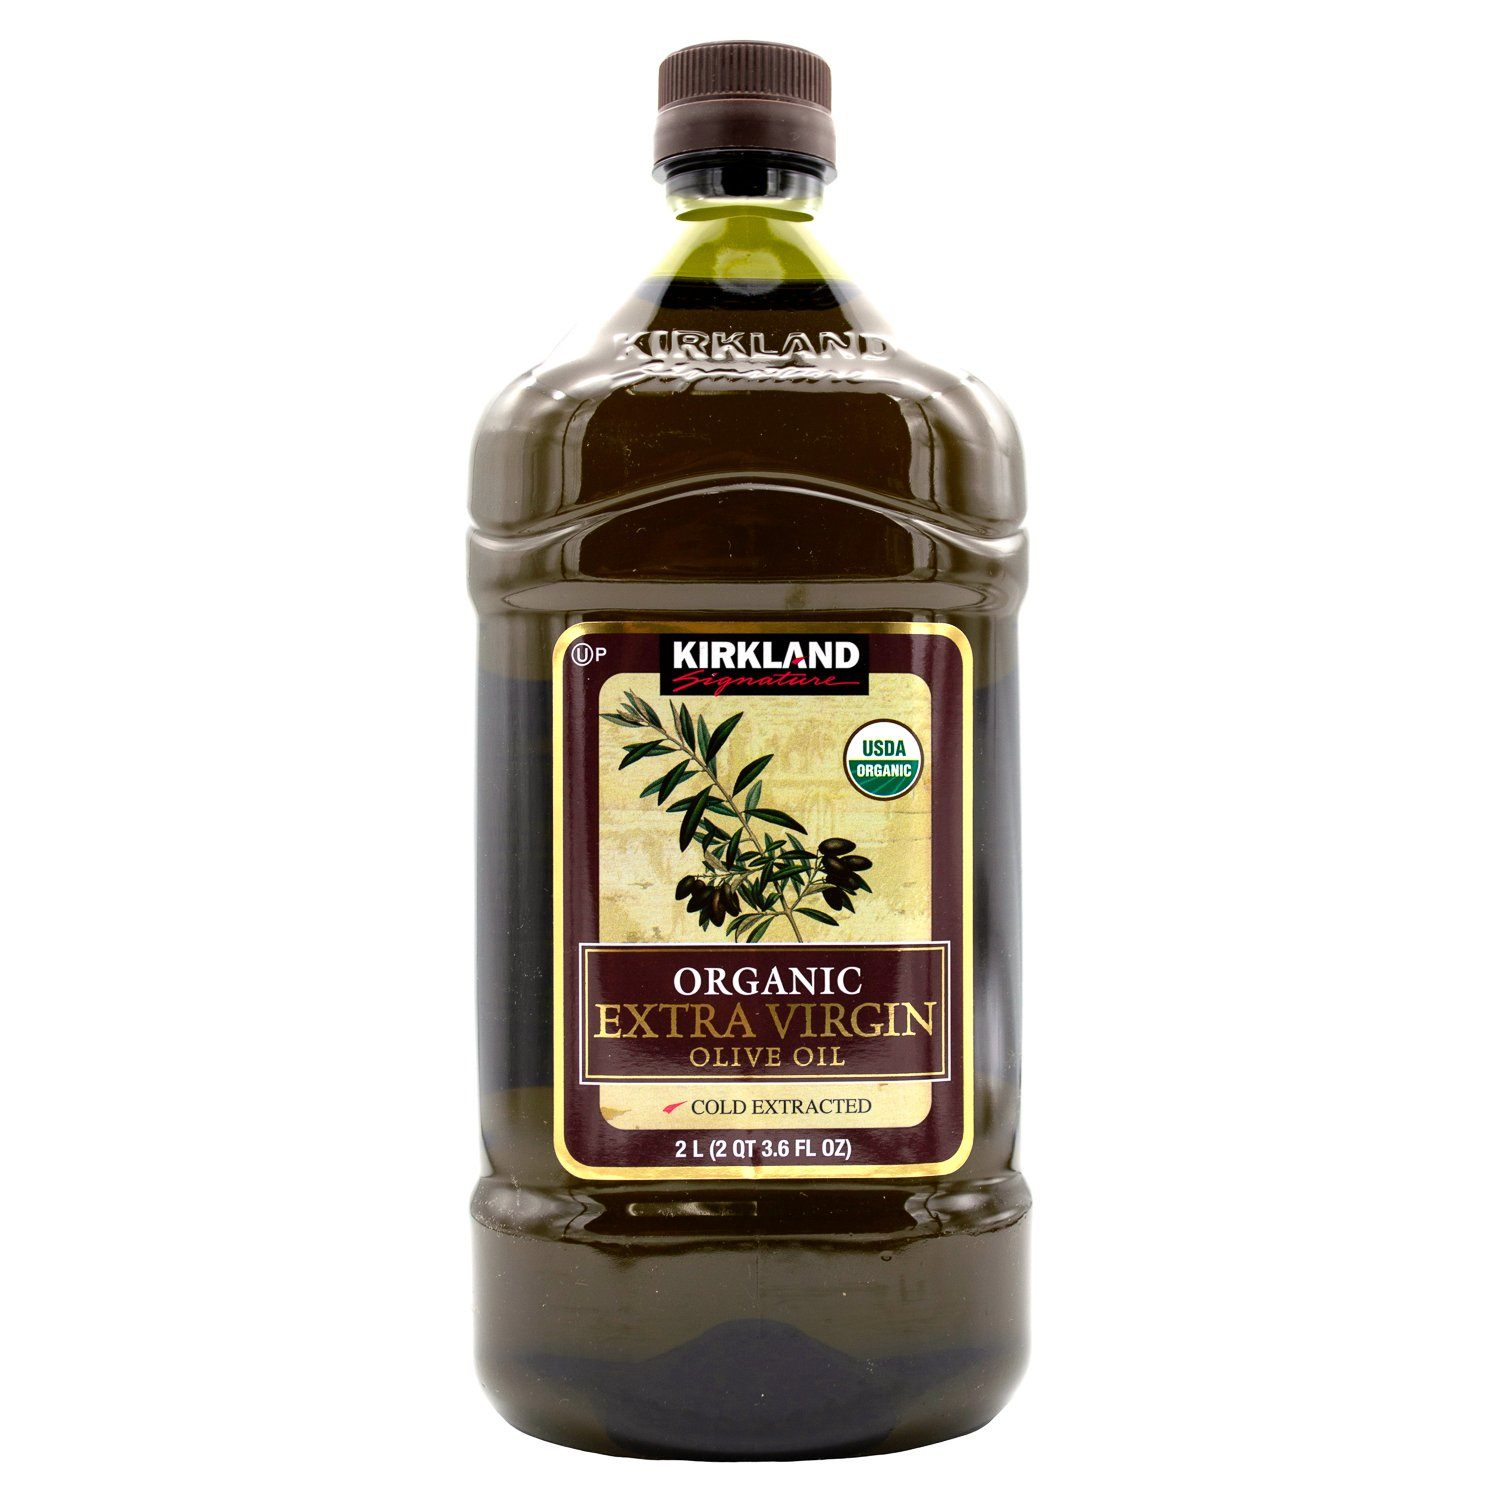 Kirkland Signature Extra Virgin Olive Oil Kirkland Signature Organic 67.6 Fluid Ounce